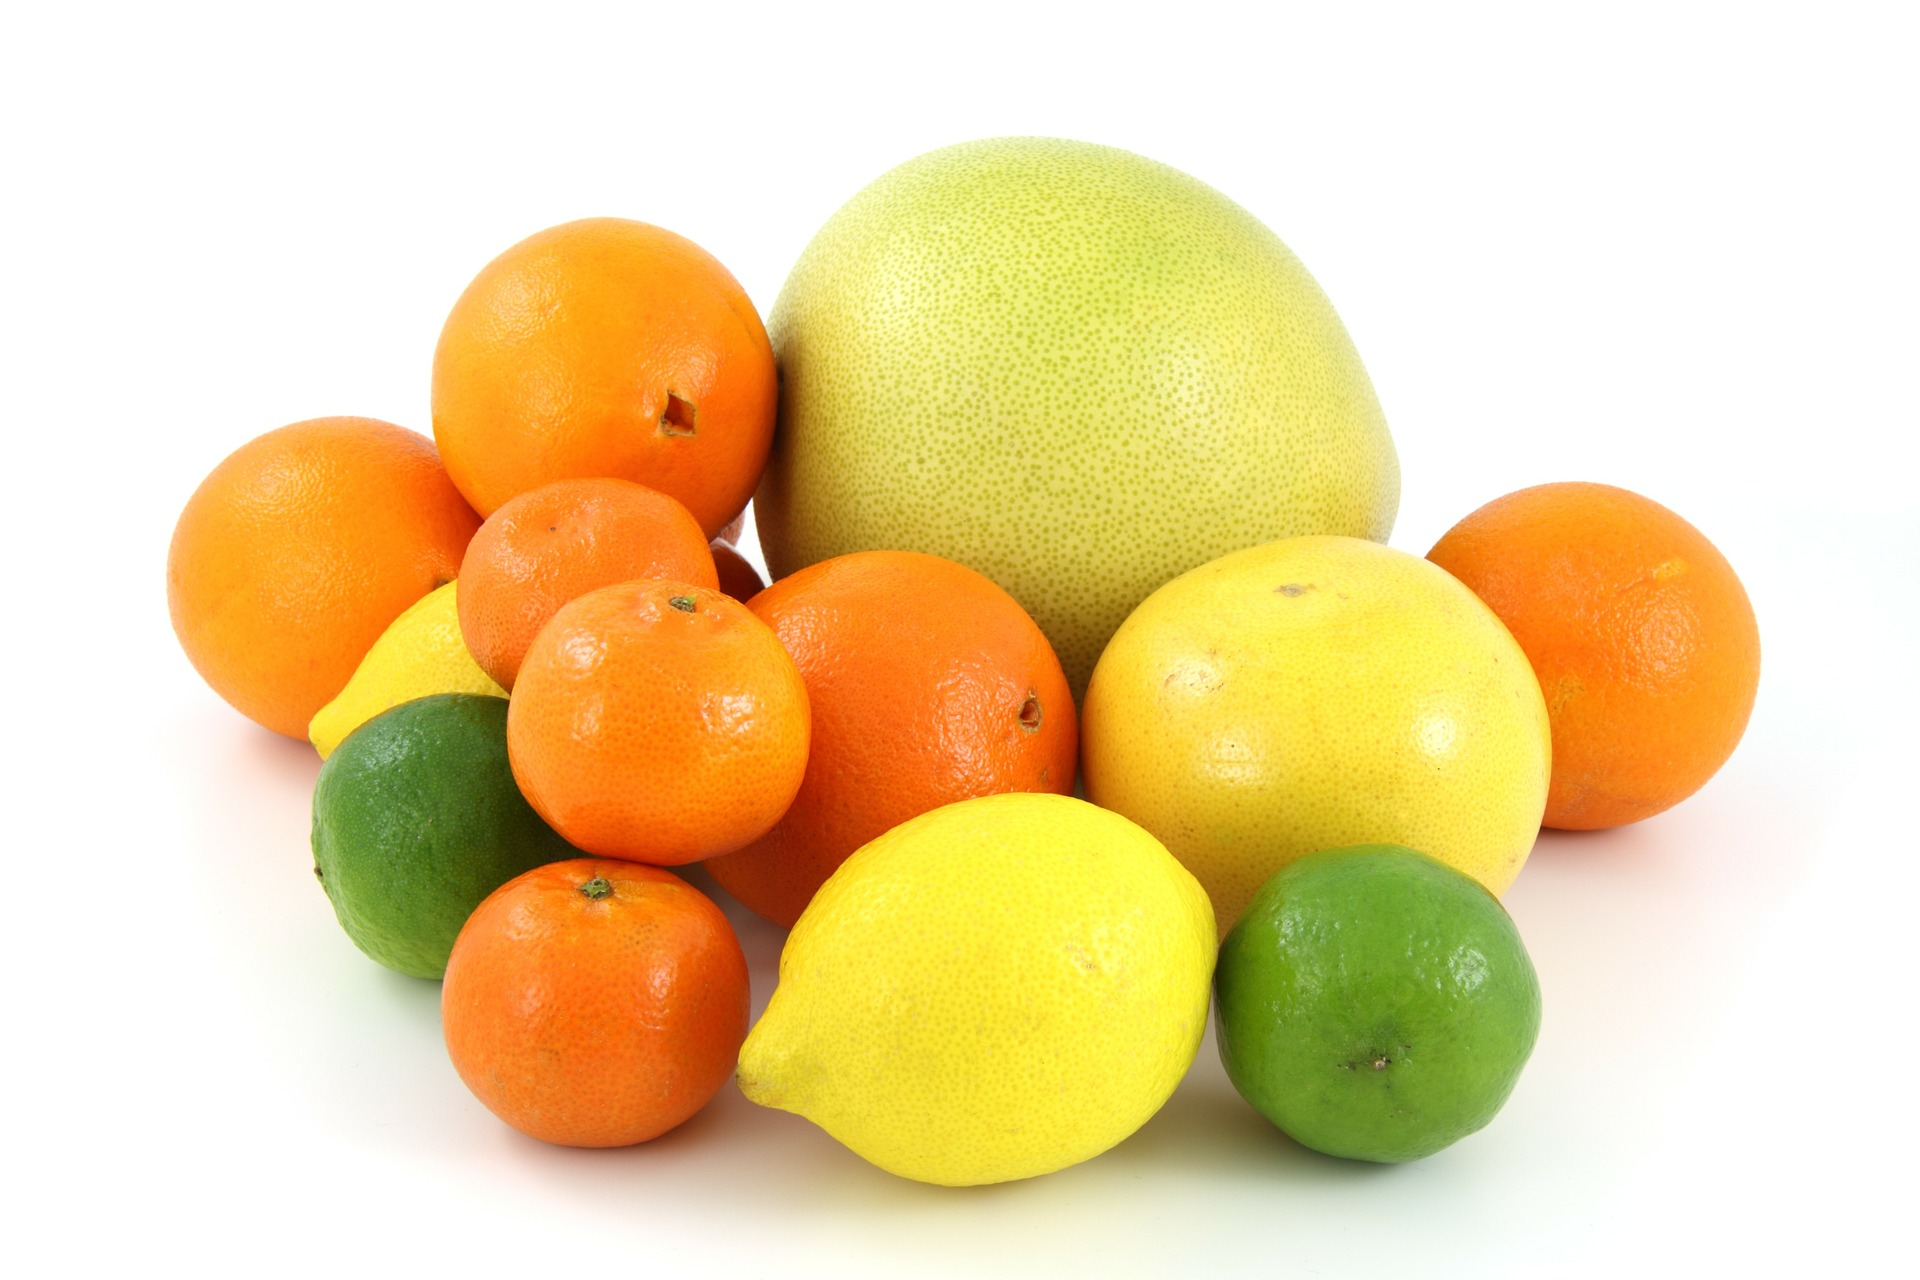 citrus fruit, lemons, limes, oranges and grapefruit